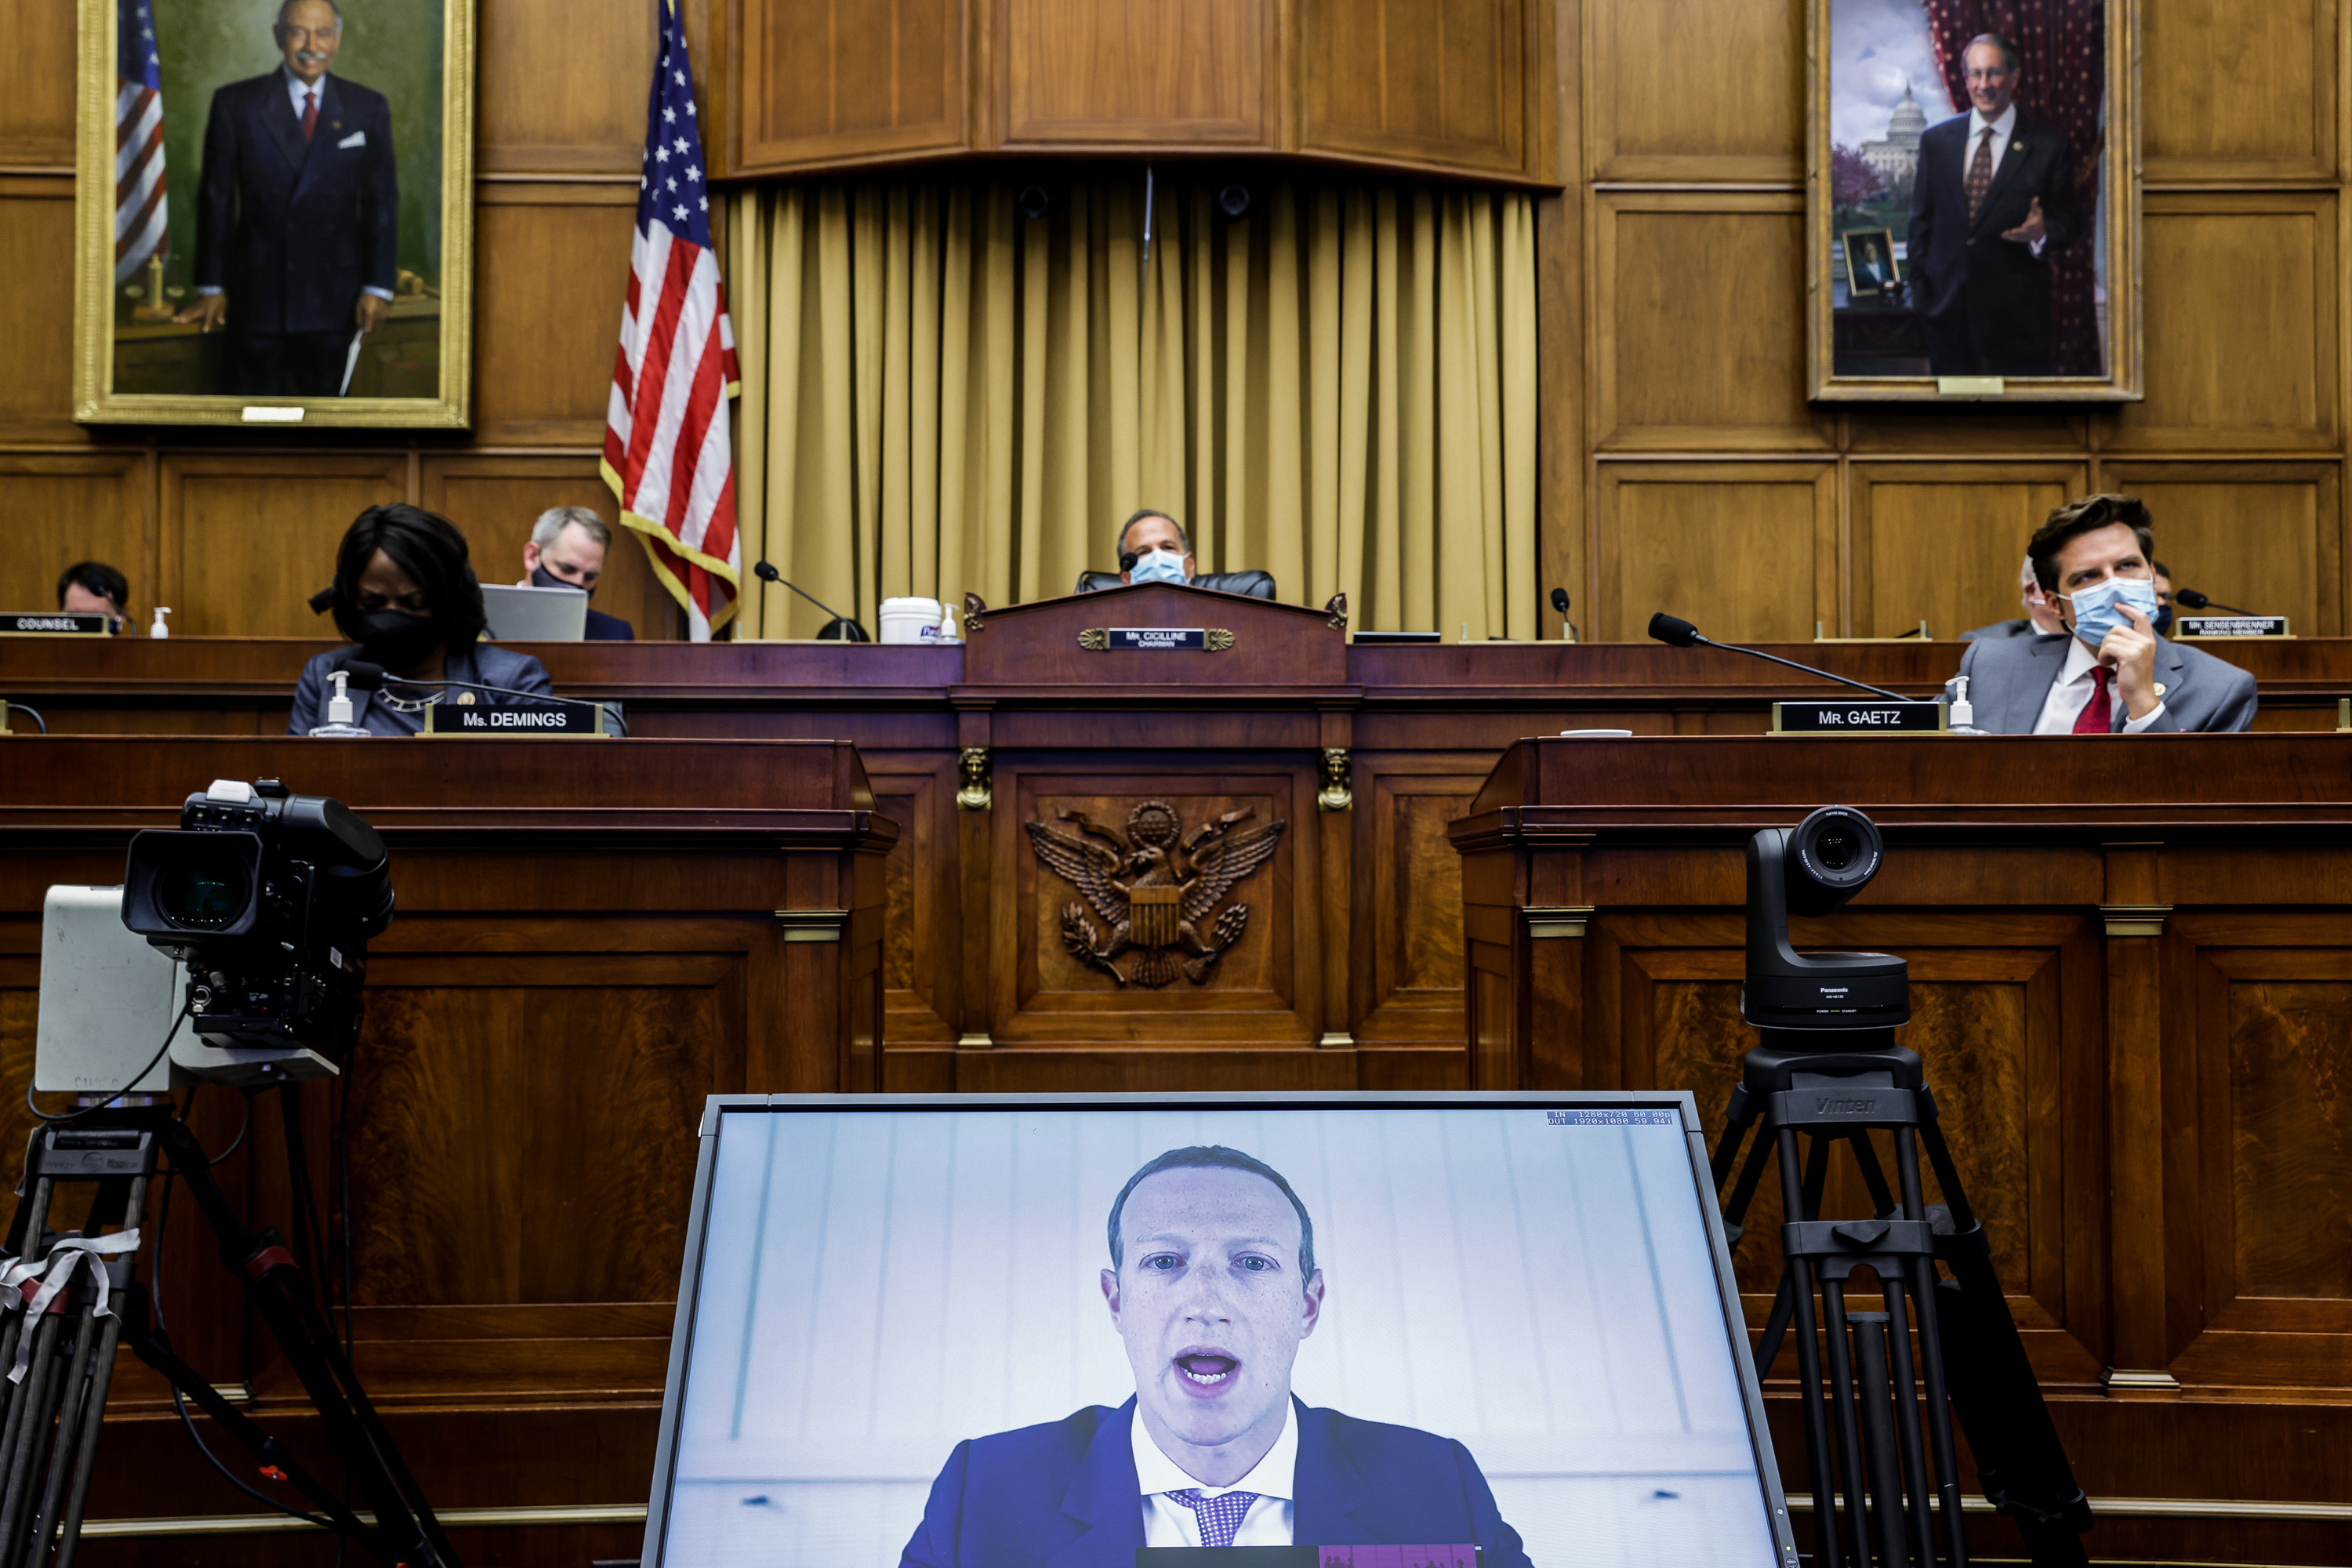 Mark Zuckerberg is on a screen on a videoconferencing call set up in the Capitol while lawmakers sitting in the background wear facemasks